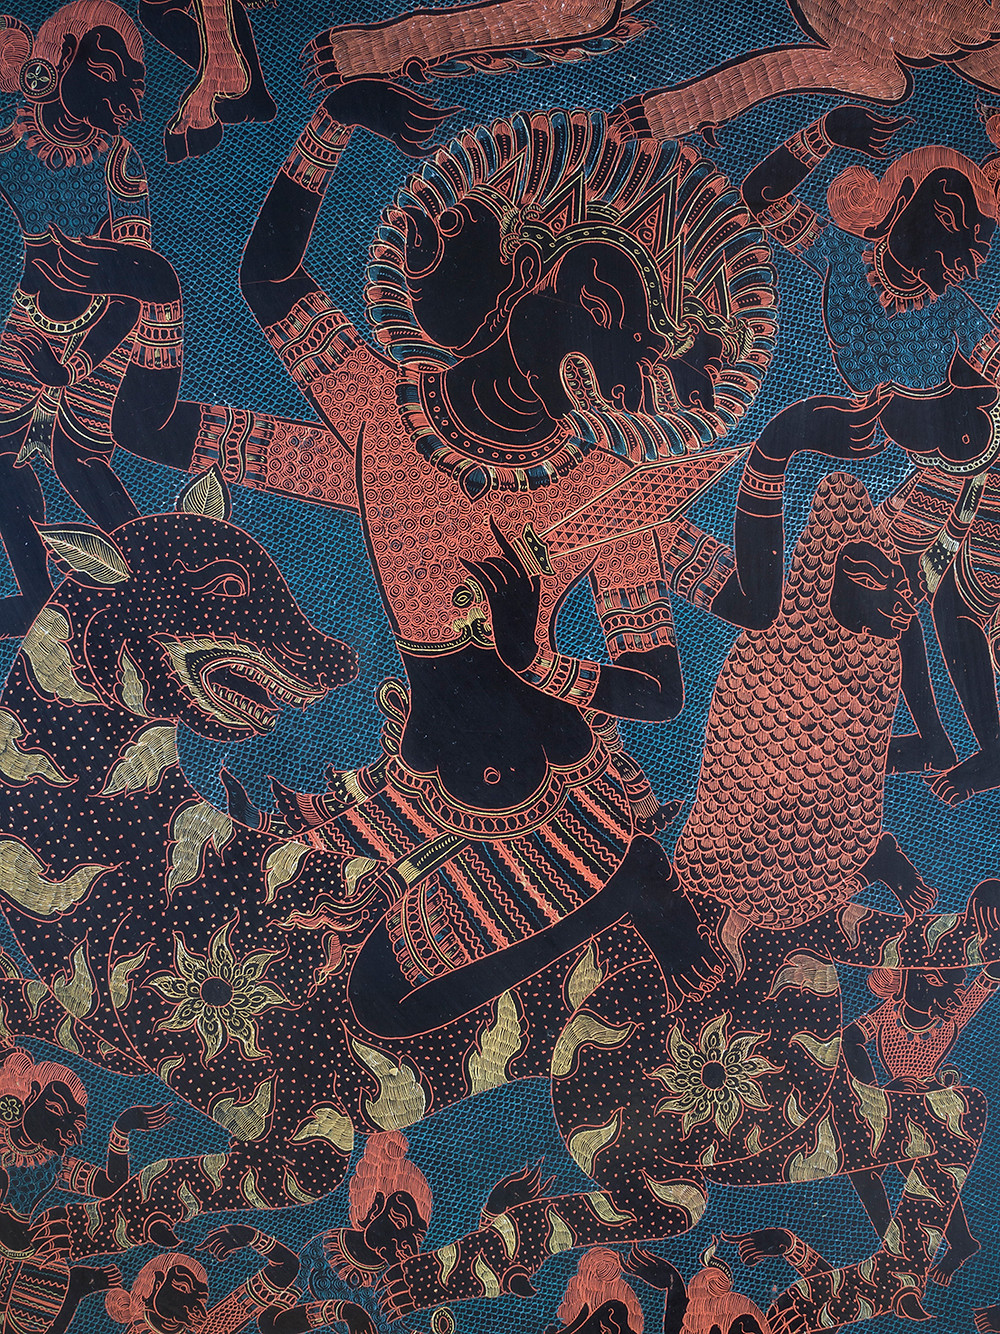 Close detail from a burmese lacquered engraved panel showing a 3 headed 4 armed god riding a tiger